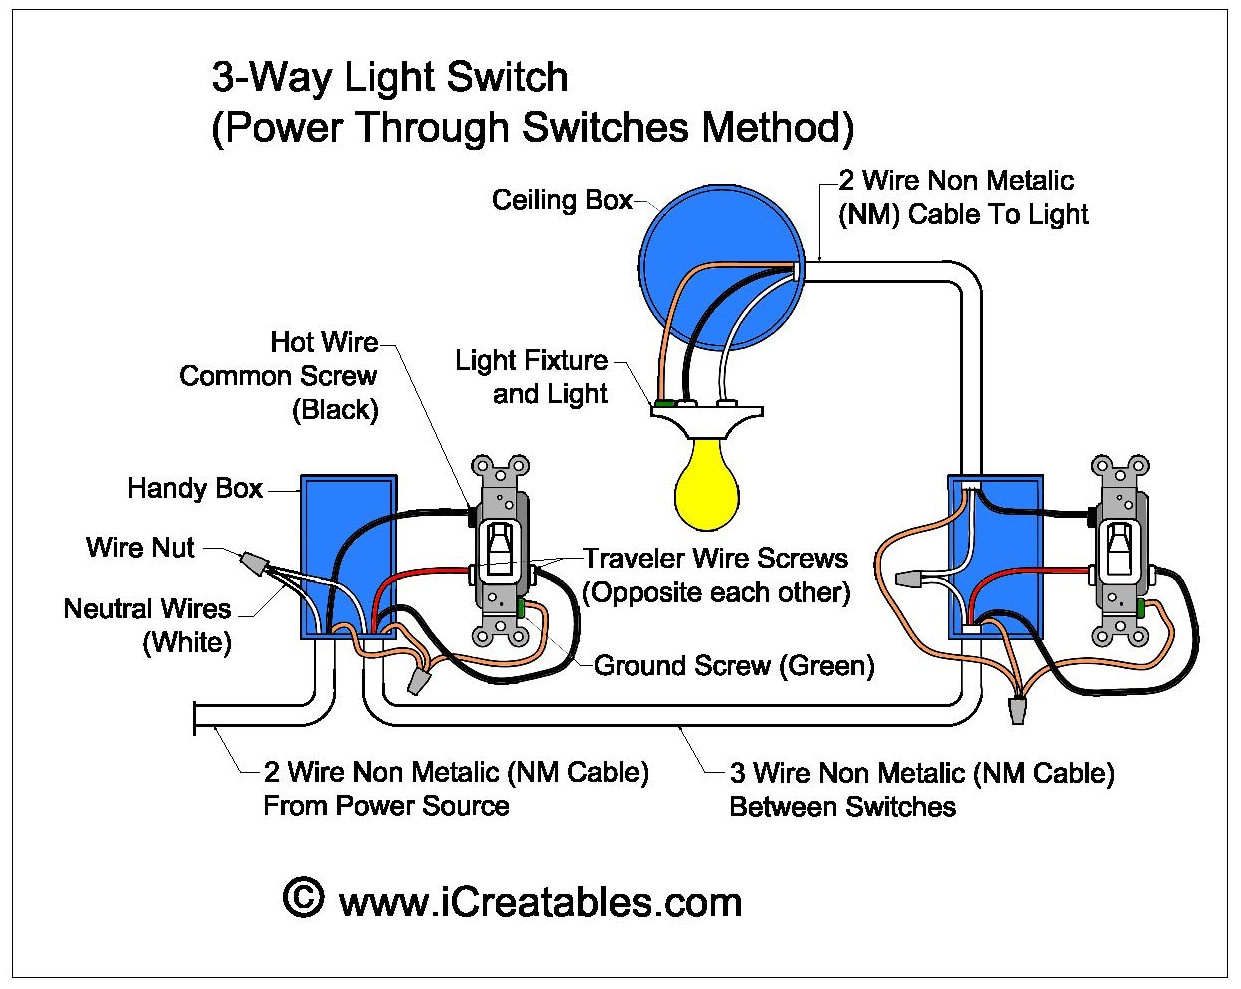 wire a three way switch com wire a three way switch in your backyard shed or basement finishing project or any place else you need a 3 way light switch